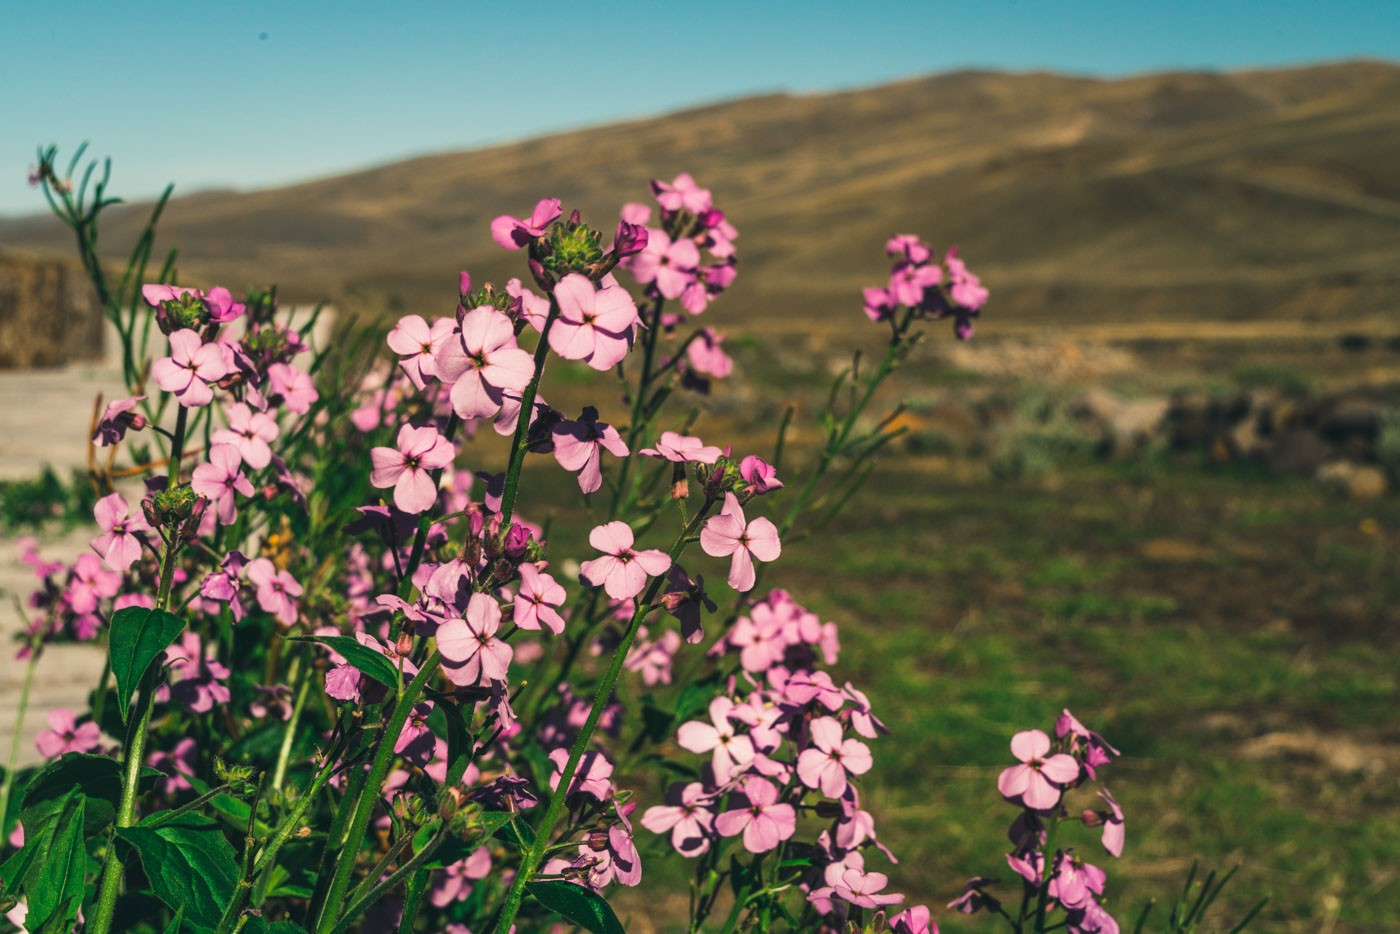 Mata negra flower, native to South America, blooms in the fields of Patagonia, Chile